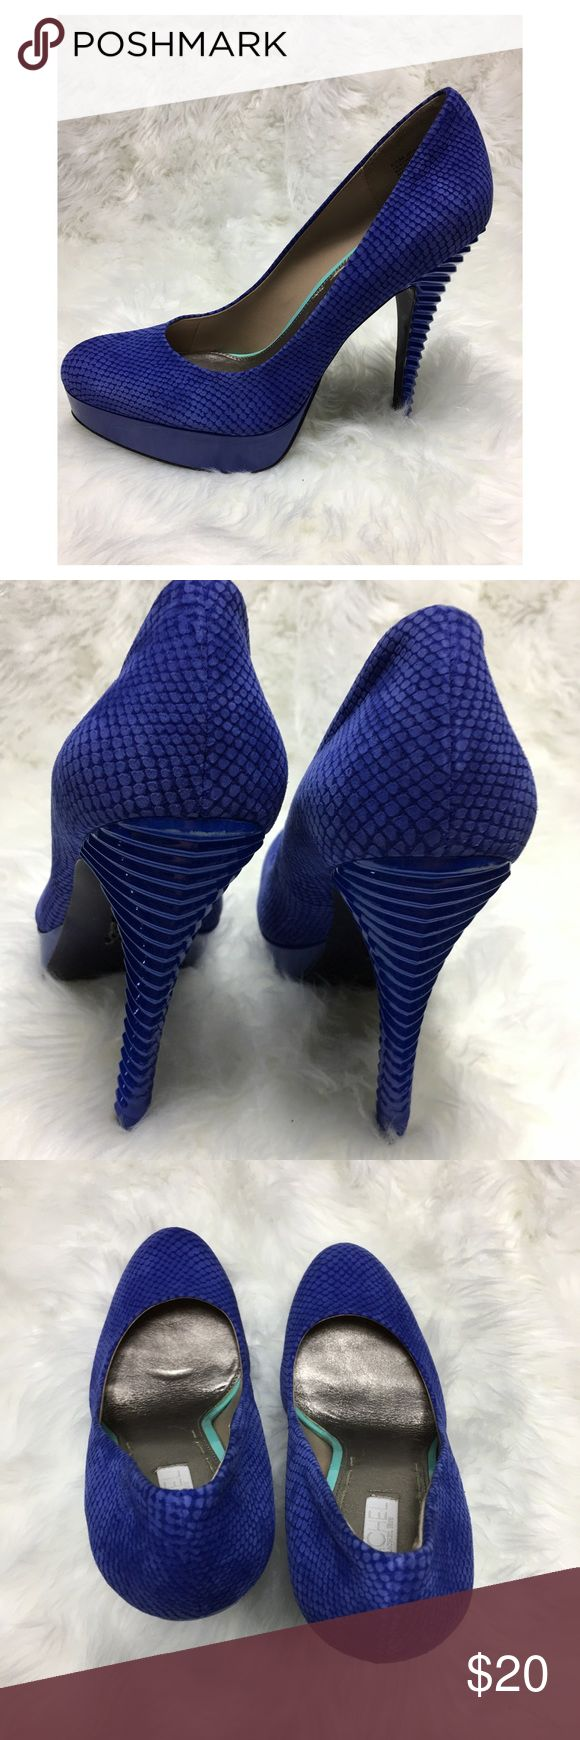 Rachel by Rachel Roy leather blue heels Sz 8.5 Rachel by Rachel Roy heels in Sz 8.5M. Absolutely gorgeous and so soft! Leather in a Faux Snake Skin pattern! Heels is 3.75 inches (measured from inside)  In excellent used condition, see pics!  All items are from a Smoke free, Meow friendly home! Items have been gently washed in Persil or Tide and line dried, unless otherwise noted (I.E.-new with tags, dry clean only..) Rachel by Rachel Roy Shoes Heels